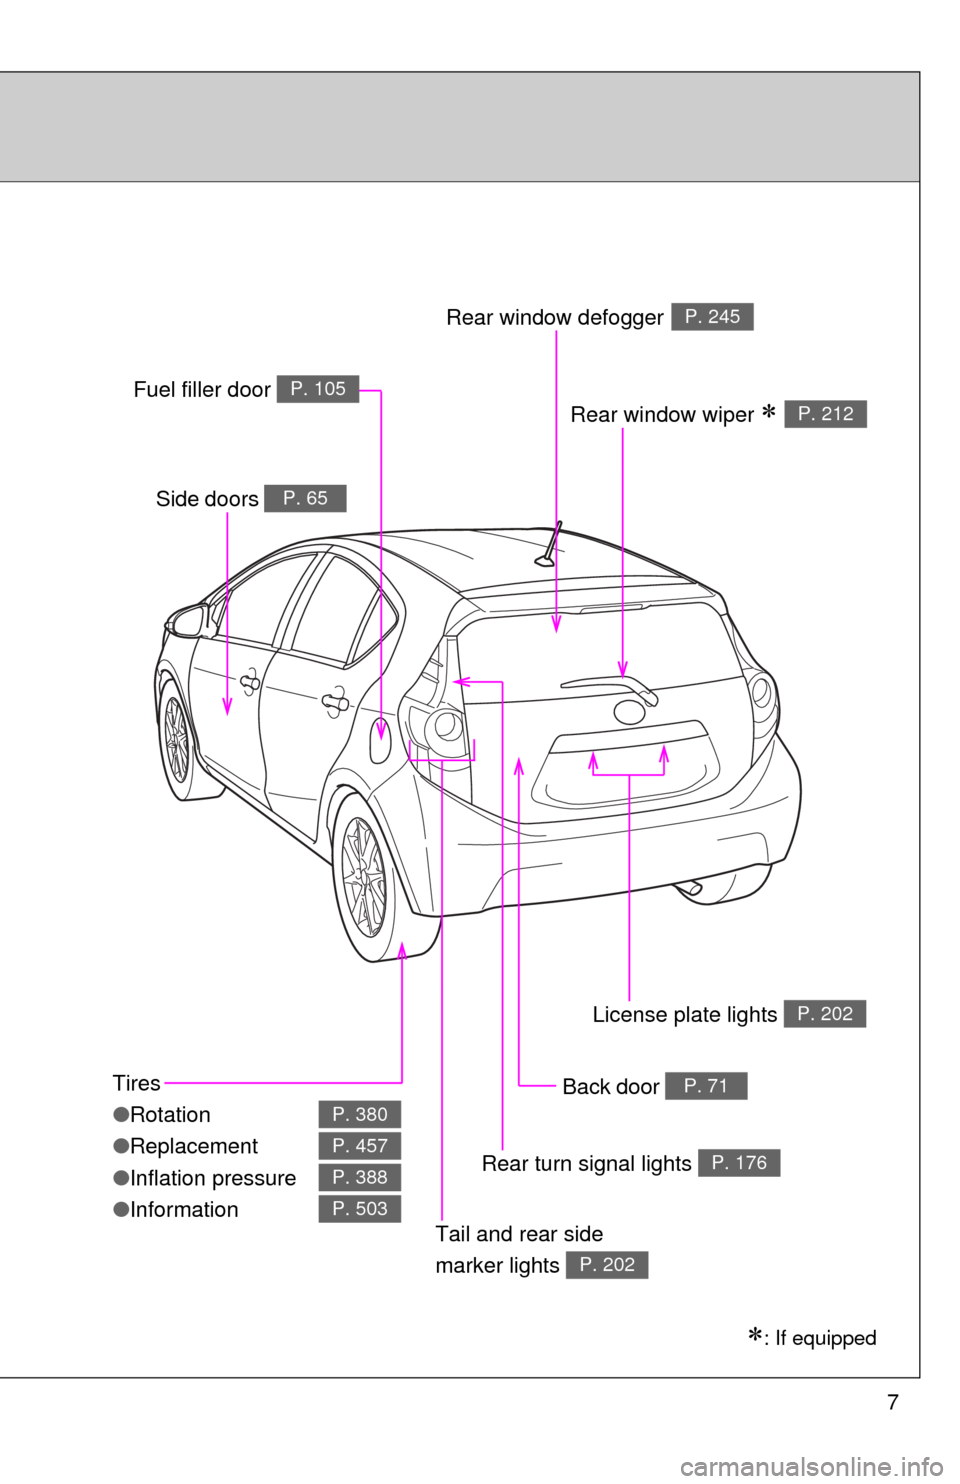 Toyota Prius C 2012 Nhp10 1g Owners Manual Fuse Box Page 7